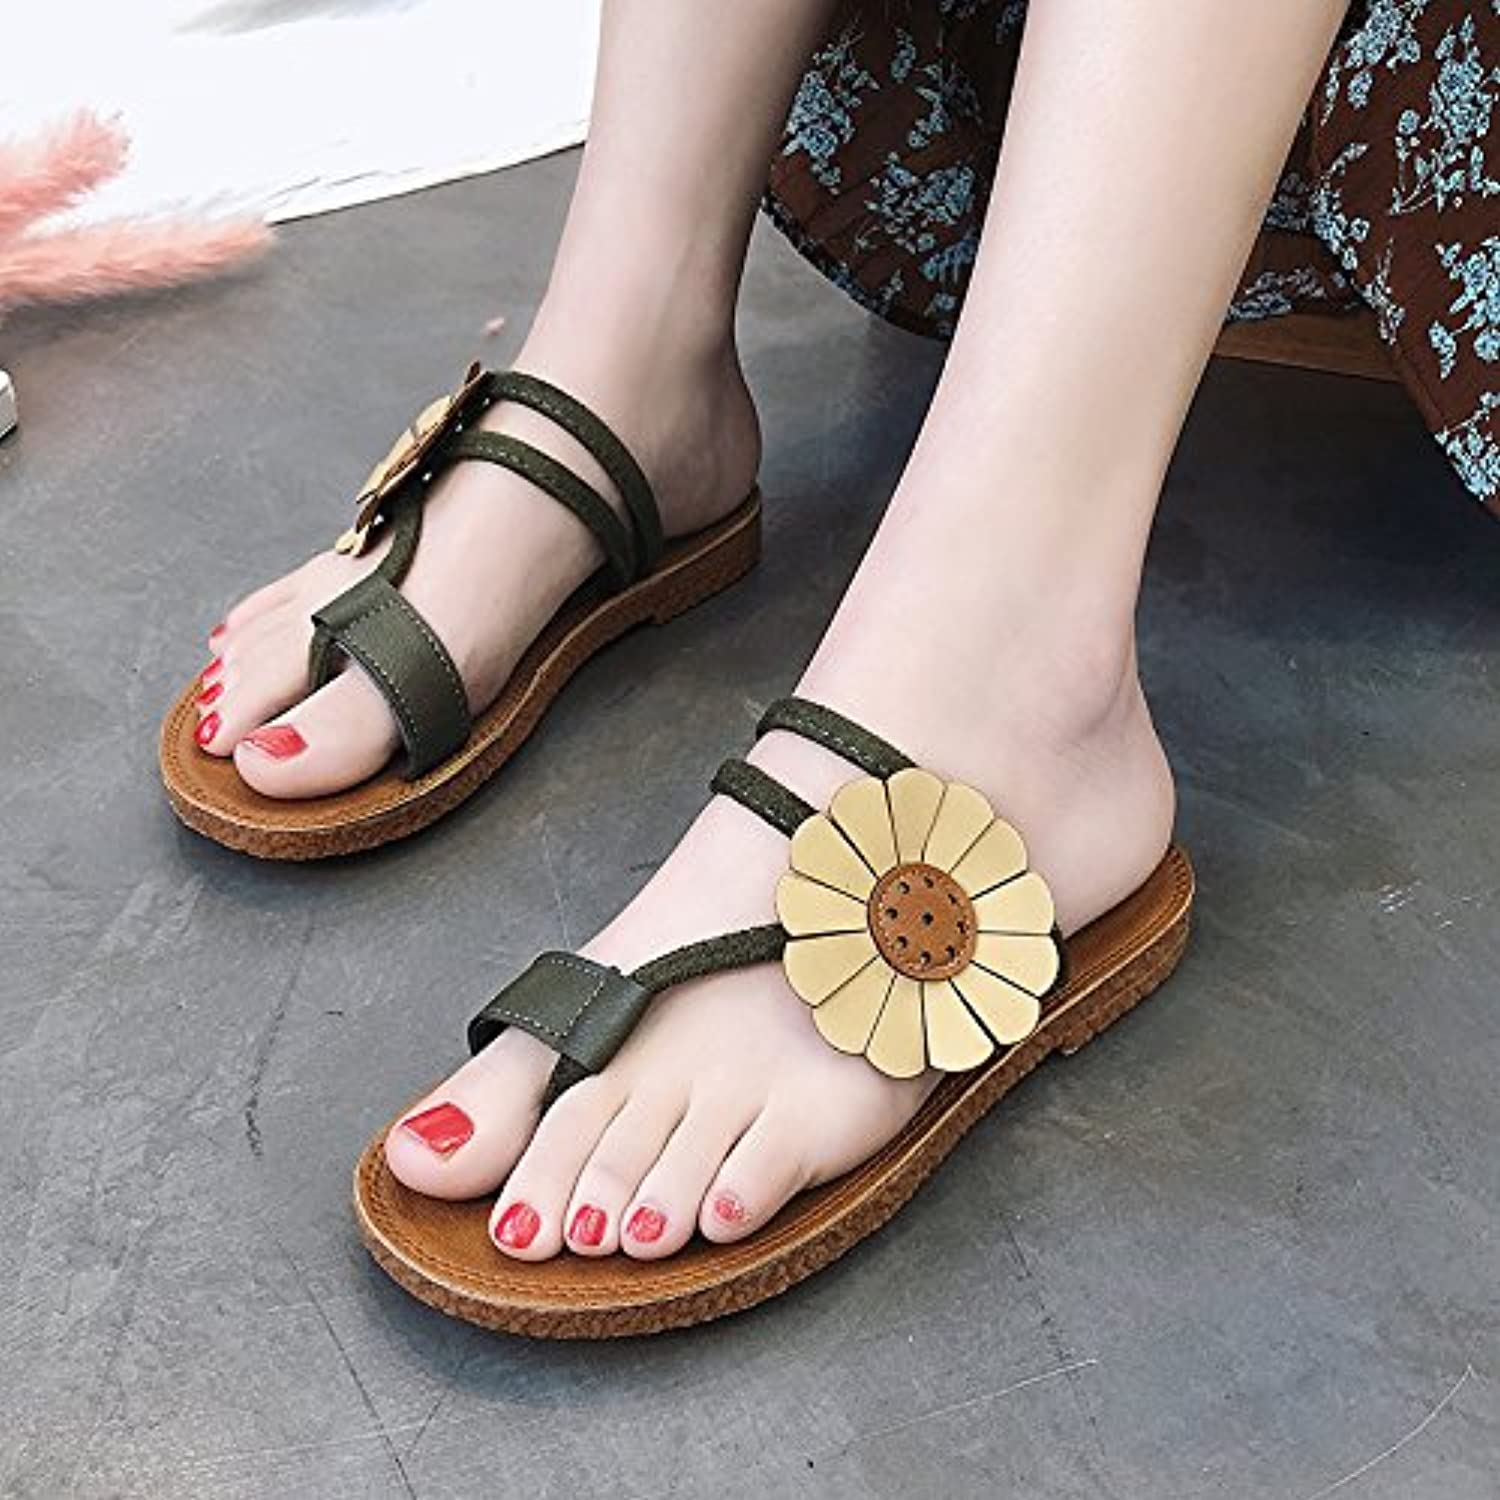 aa95fb0d9def GAOLIM The Slippers Female Summer Leisure Shoes Shoes Shoes Low With Wild  Anti-Slip Women Shoes B07C3R9RCD Parent e15f1b